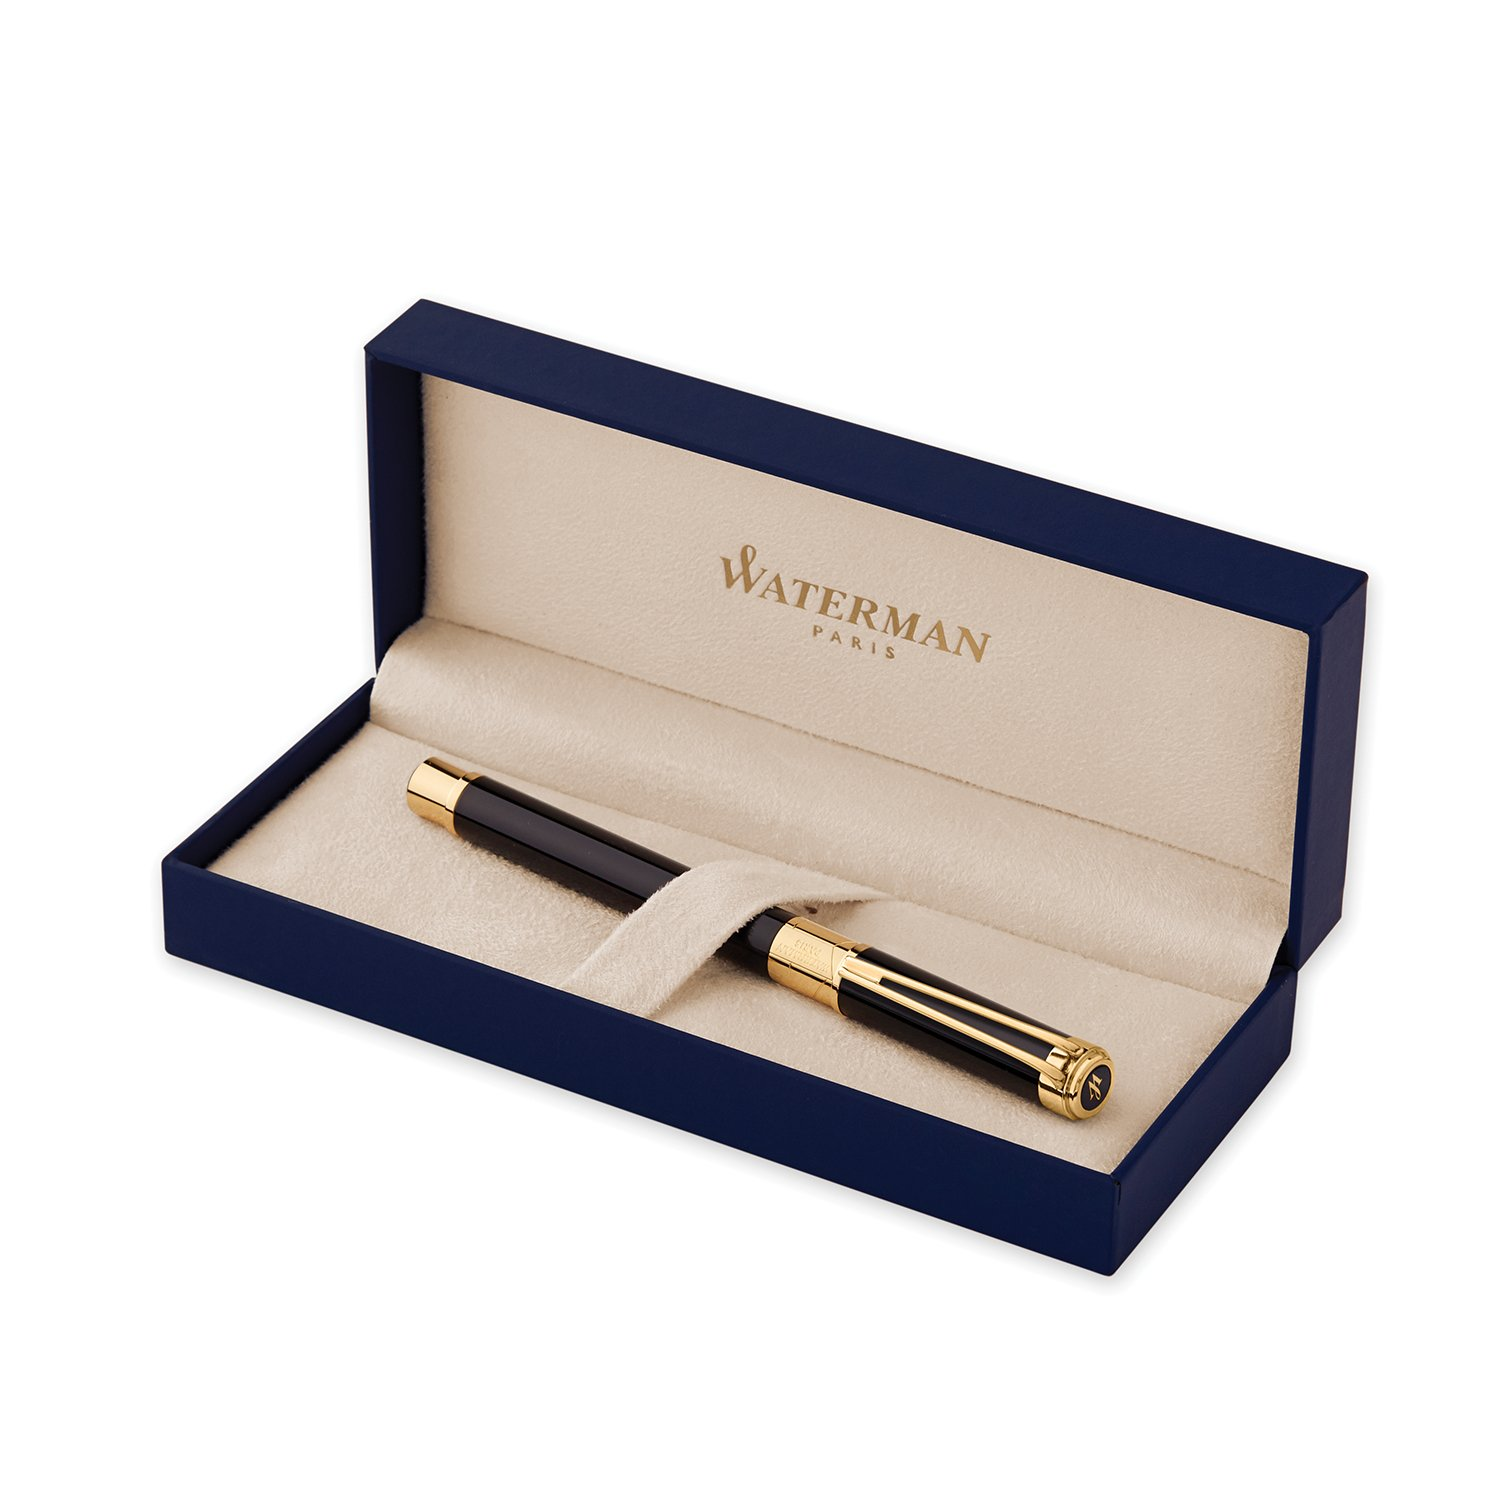 Waterman Perspective Black with Golden Trim, Rollerball pen with Fine Black refill (S0830860)